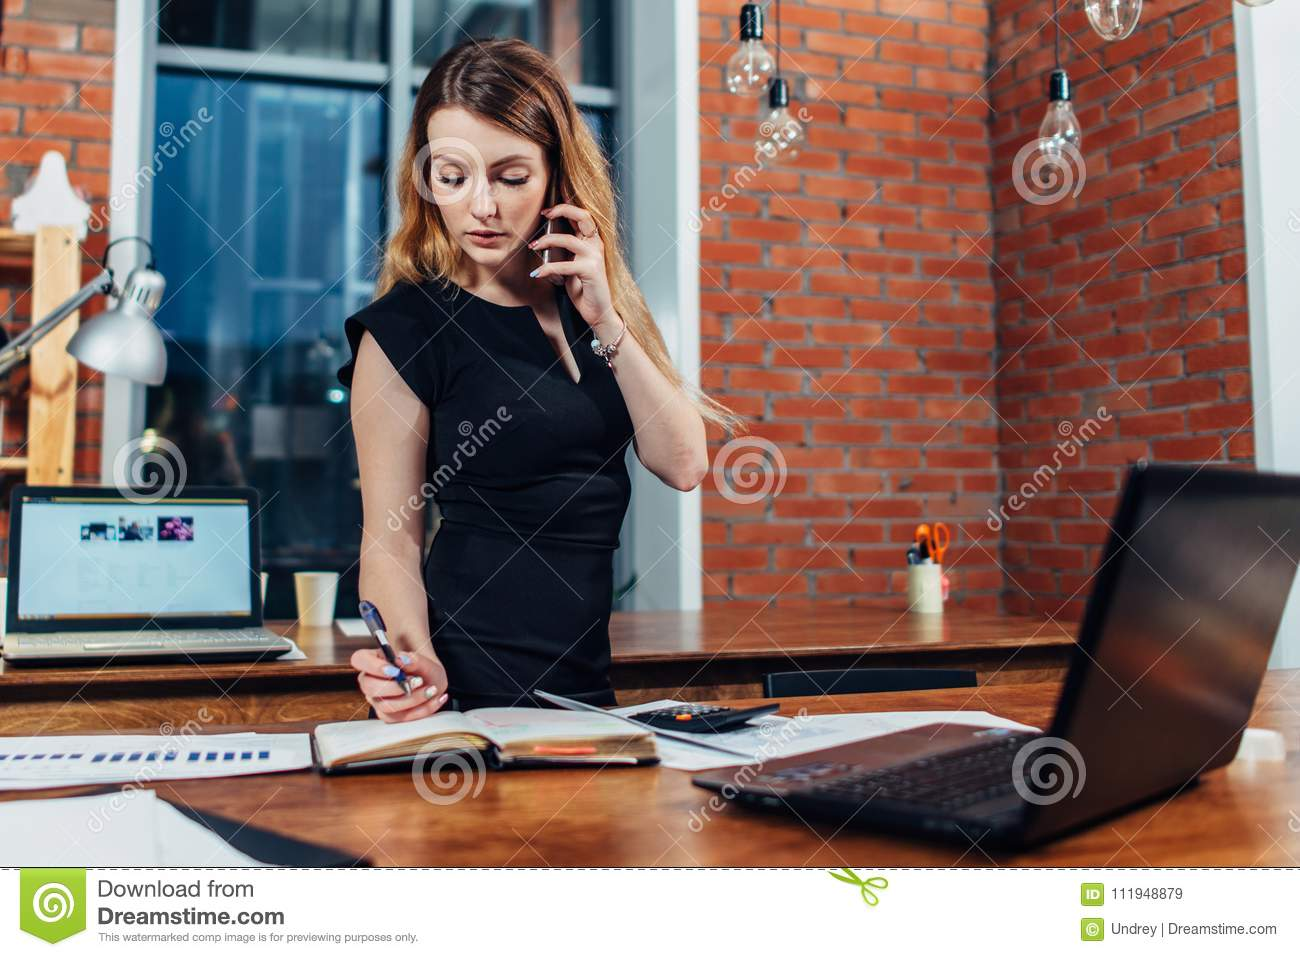 Pretty young woman talking on phone counting using a calculator working at office standing at desk